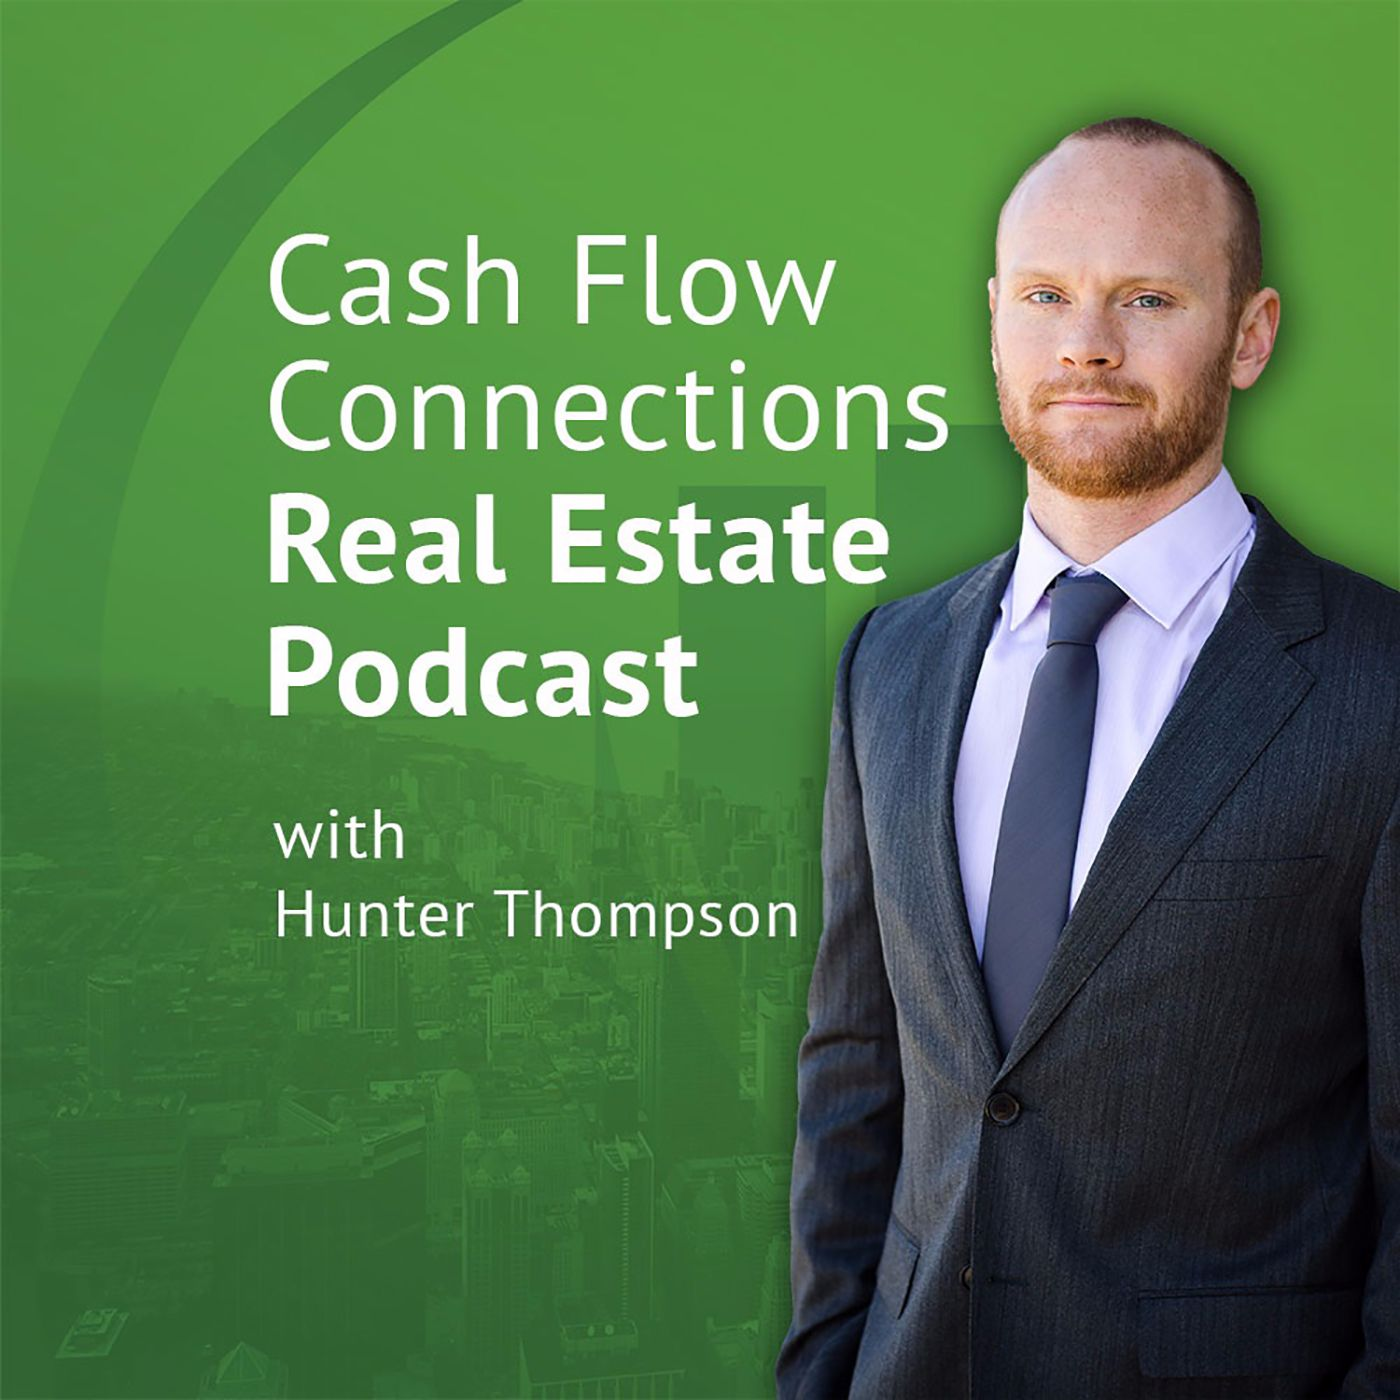 E177 - Throwback Episode - Real Estate Negotiations from a Former FBI Hostage Negotiator show art